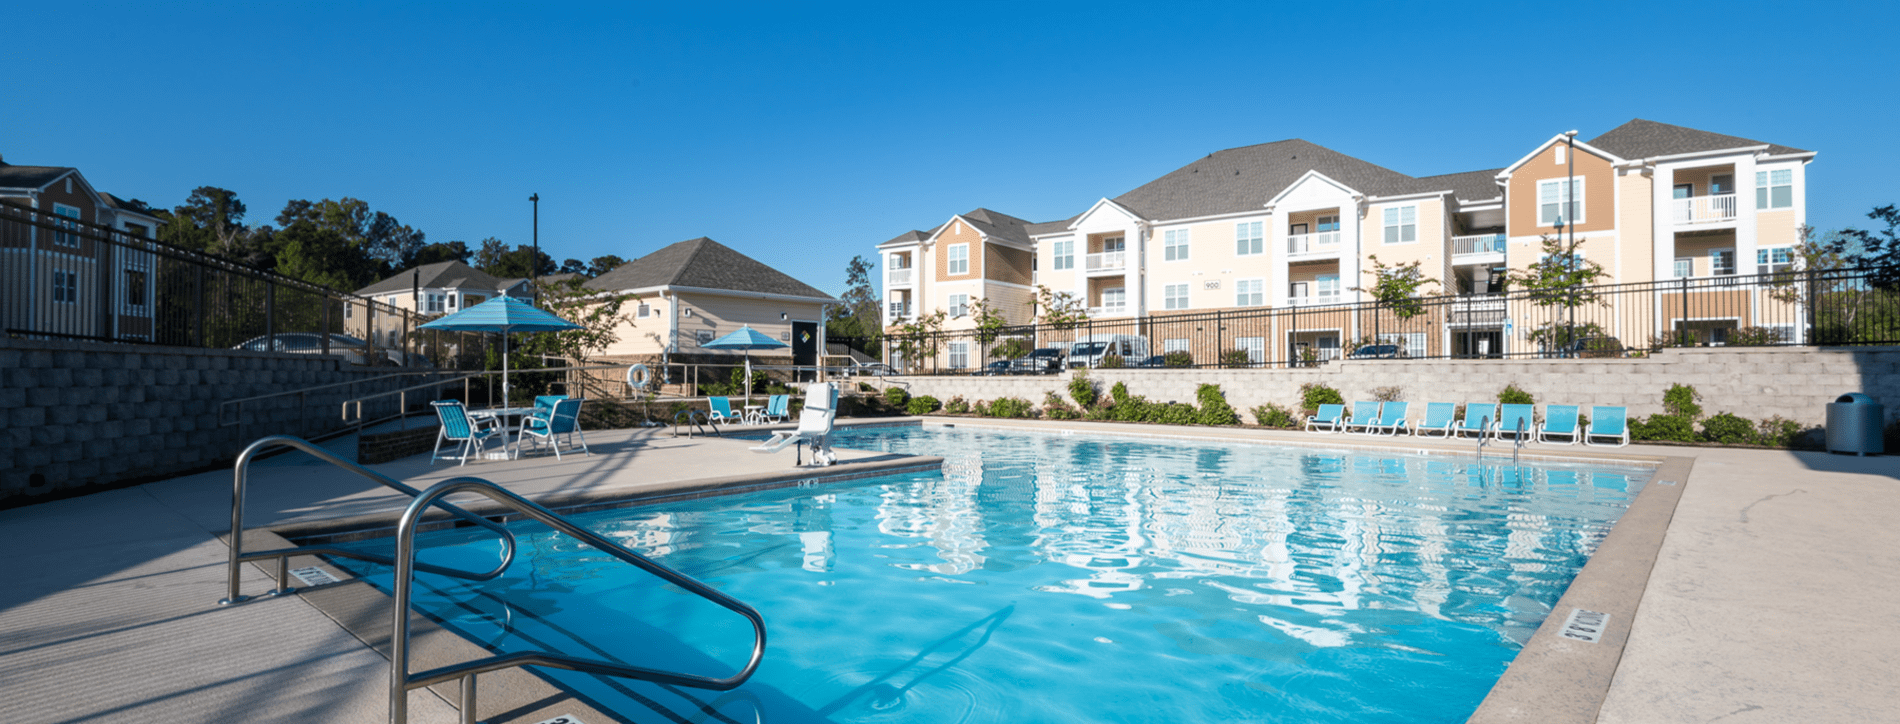 Apartments In Garner Nc The Reserve At White Oak